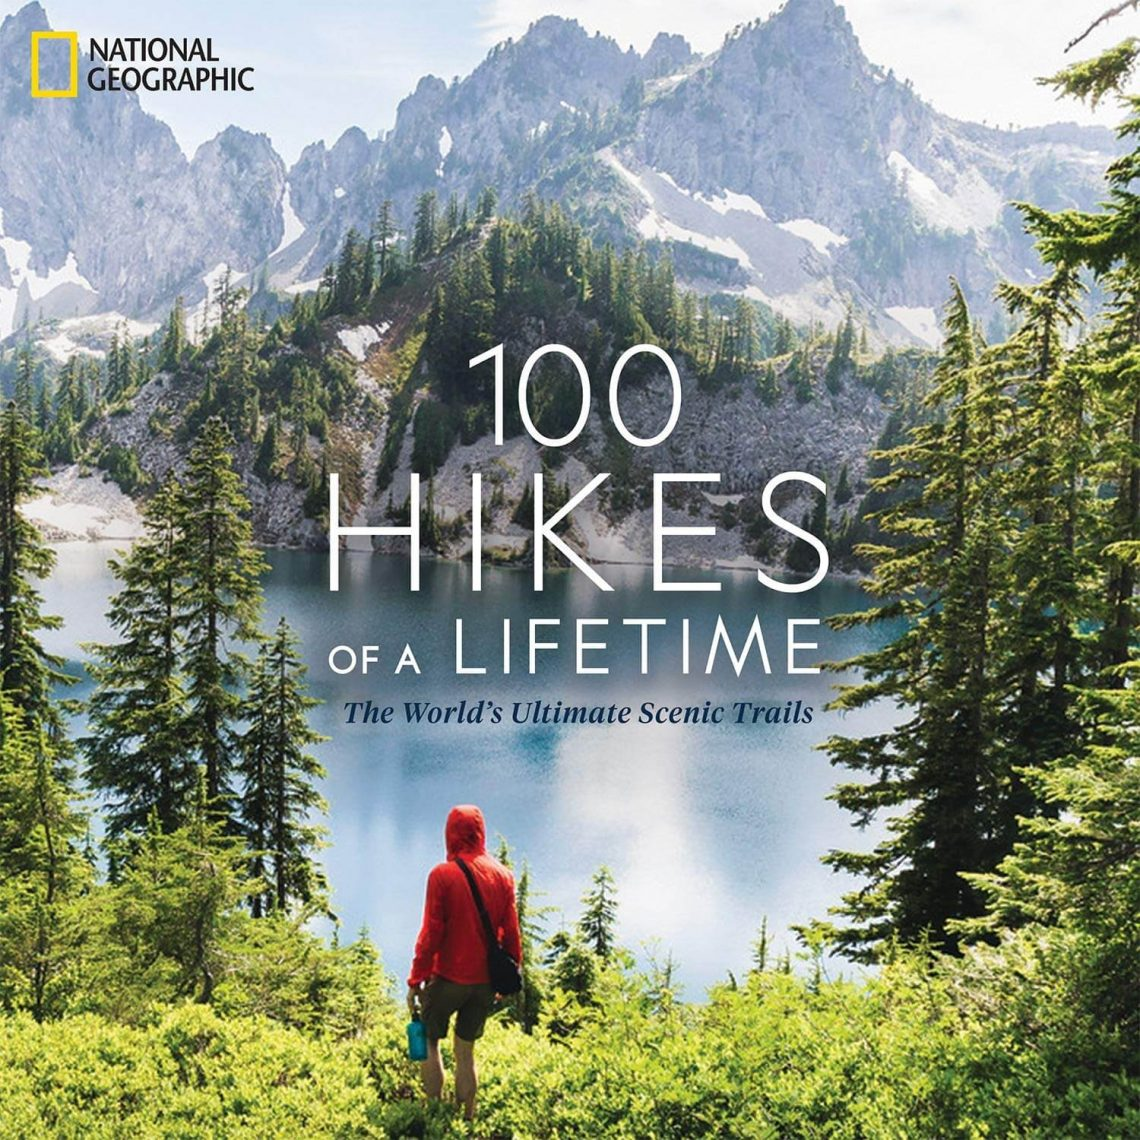 100 hikes of a lifetime cover